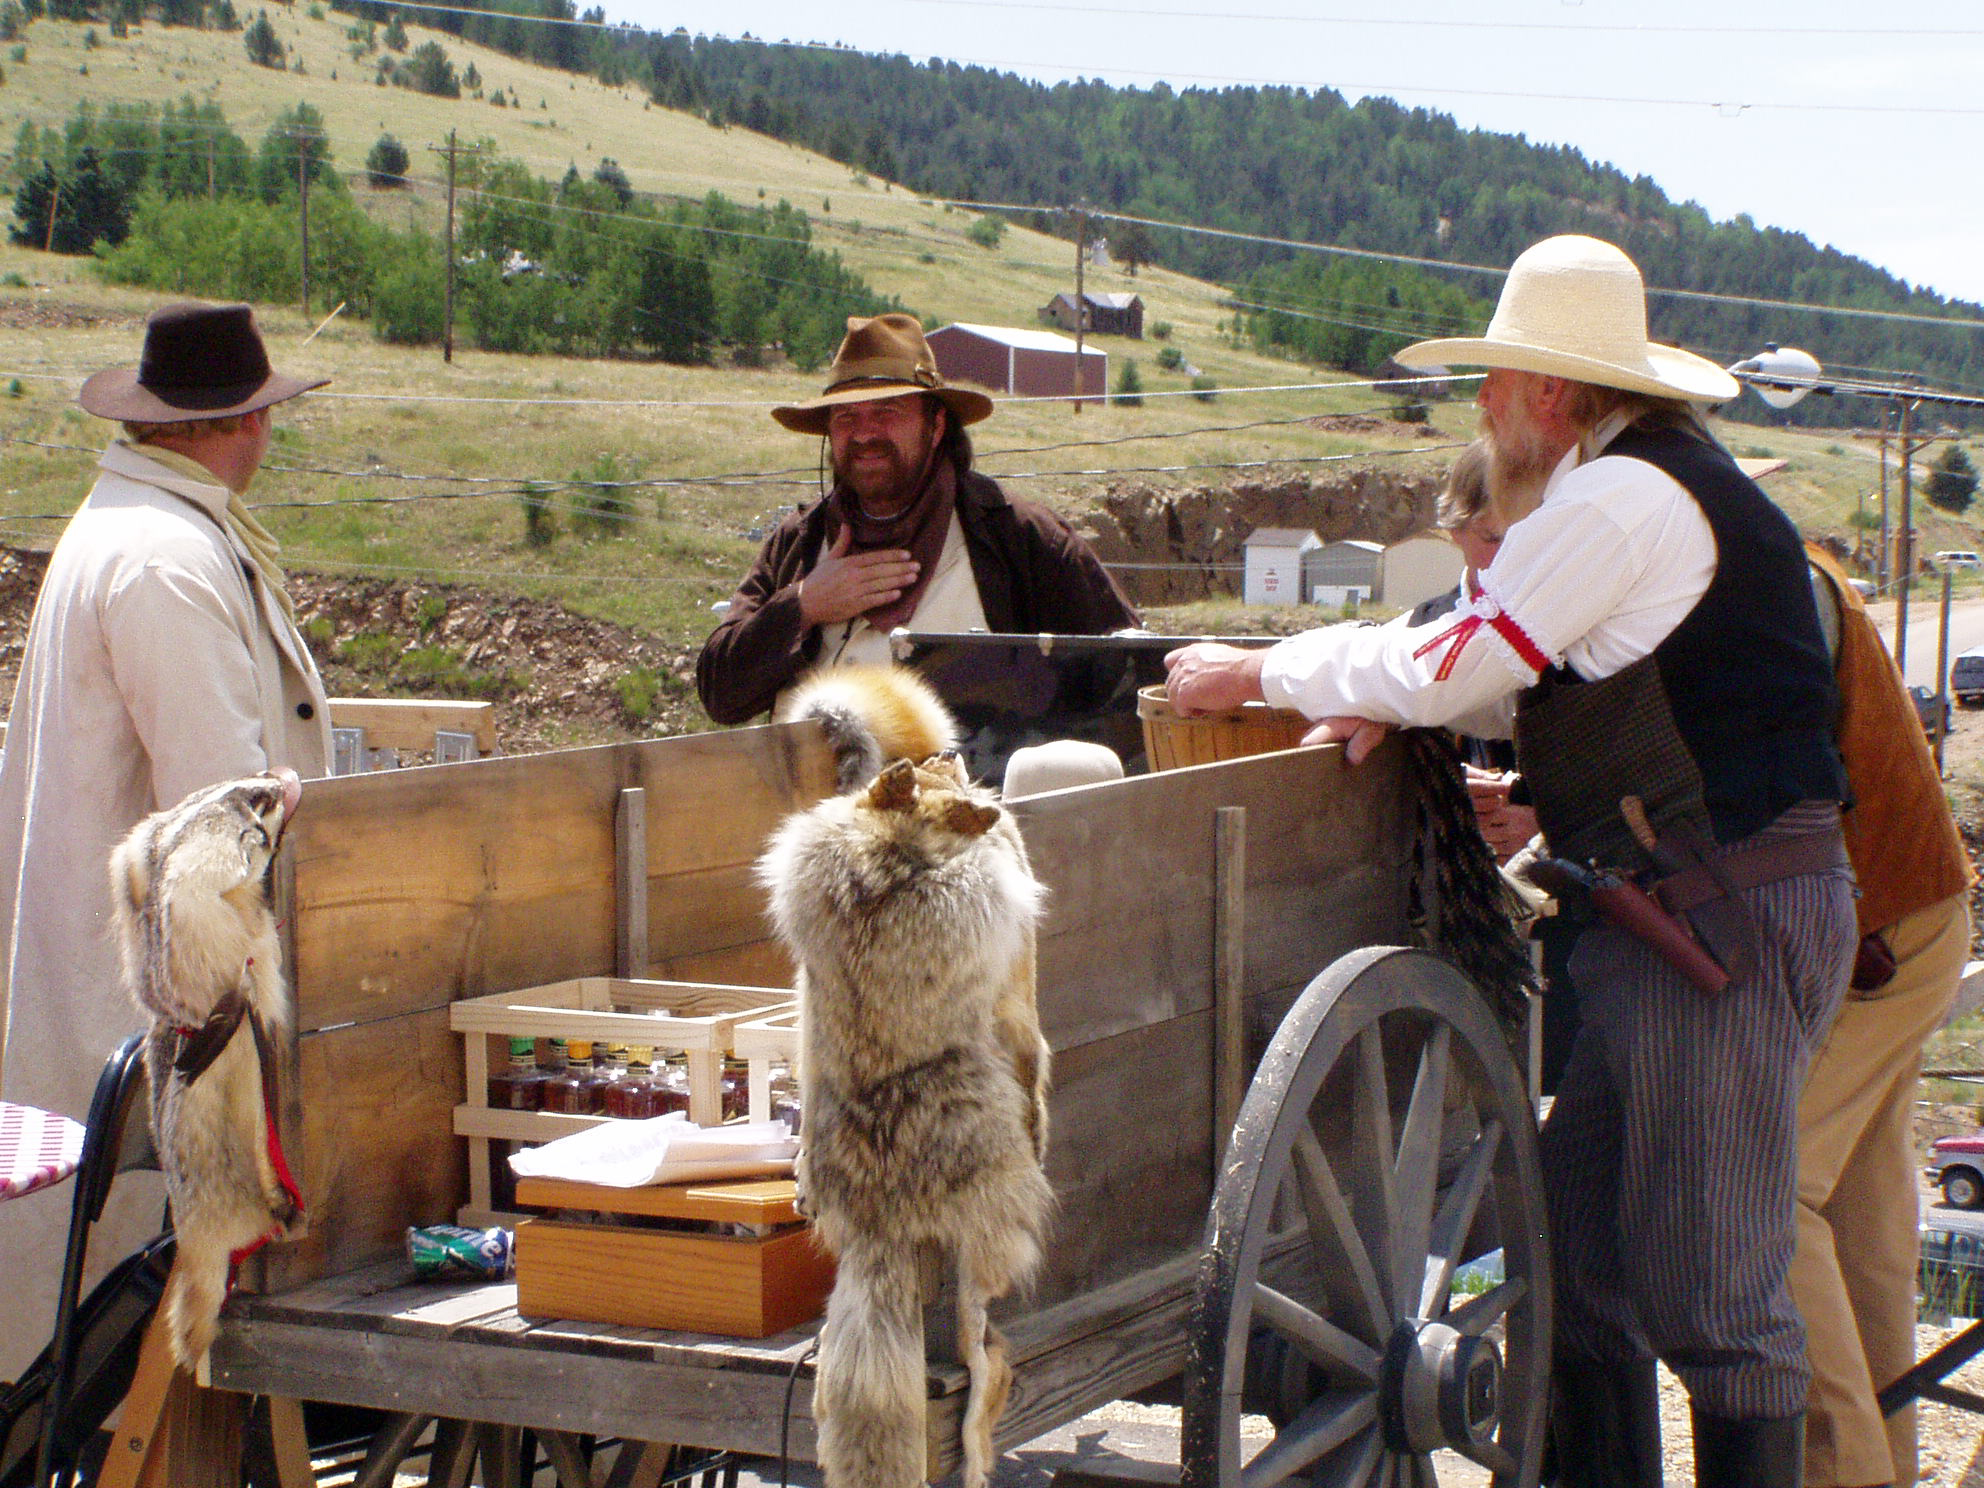 Reenactors with wagon in Cripple Creek, Colorado